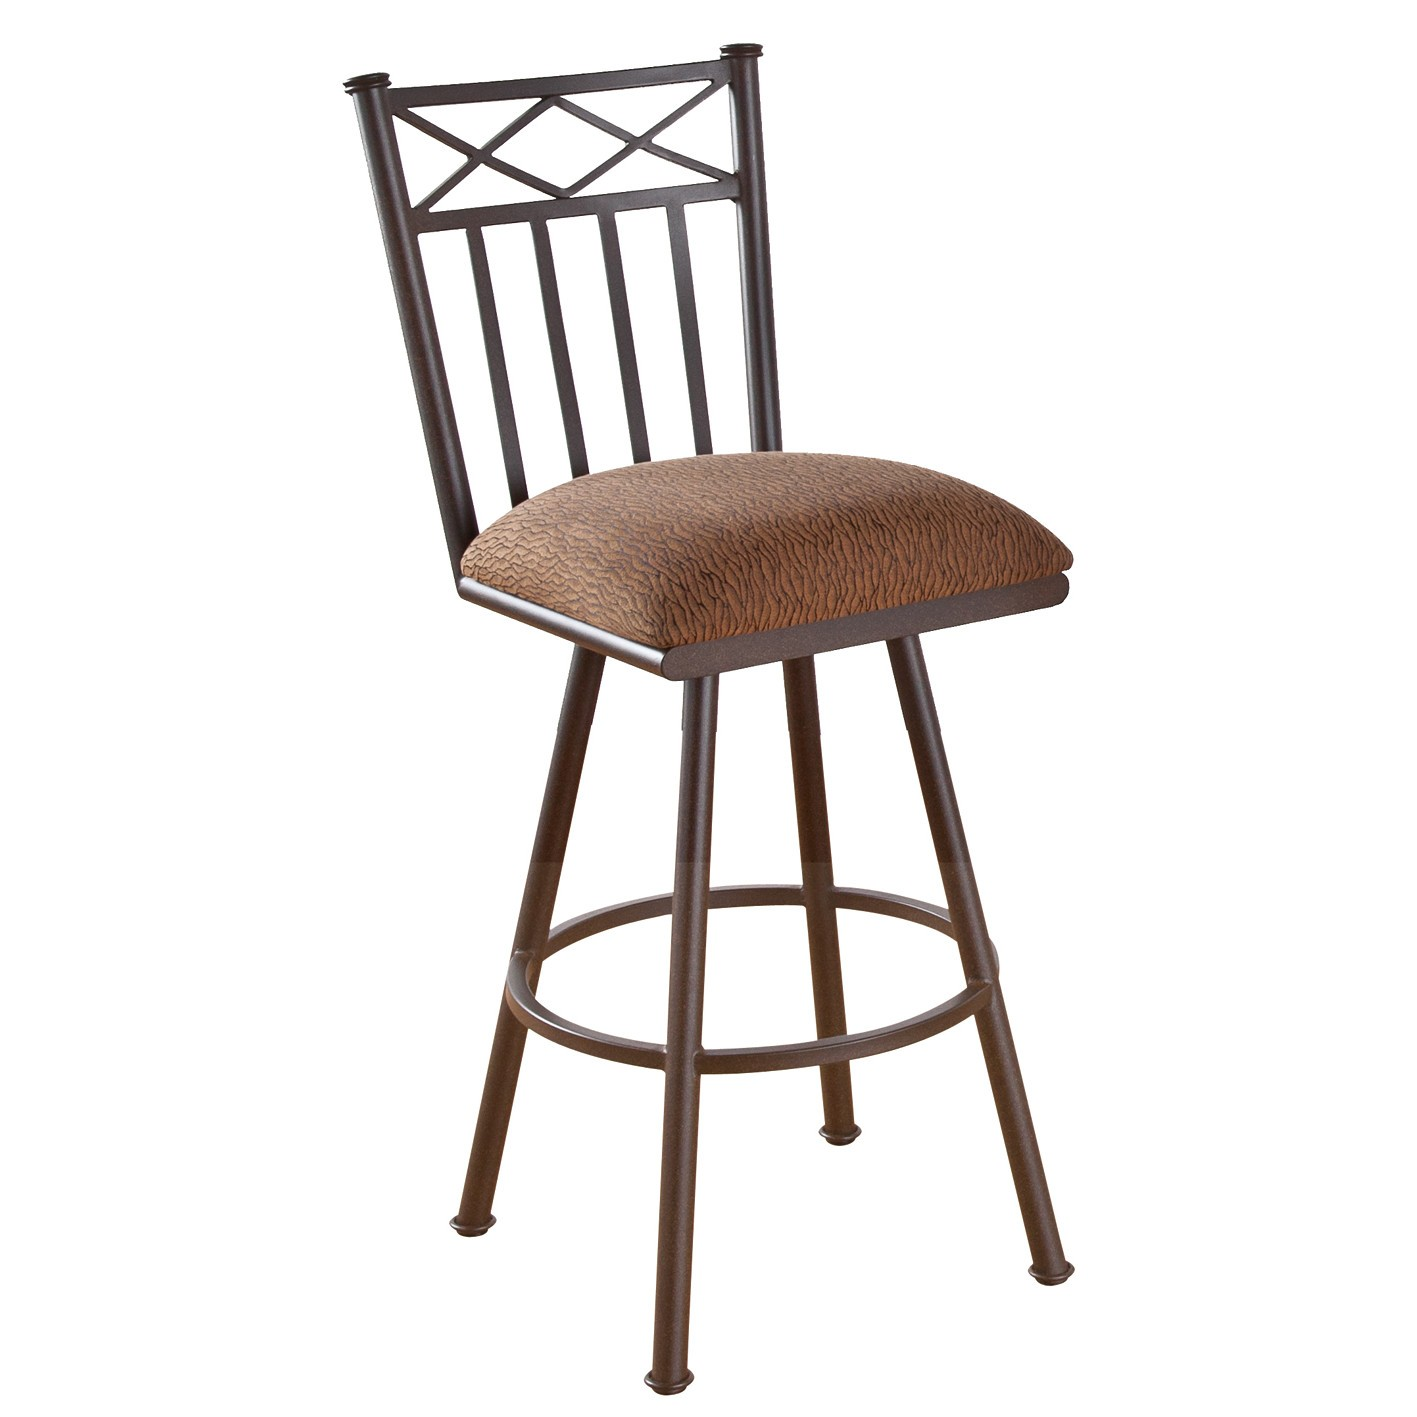 Marvelous Tempo Like Arlington 34 Swivel Arcadia Bar Stool By Callee Unemploymentrelief Wooden Chair Designs For Living Room Unemploymentrelieforg